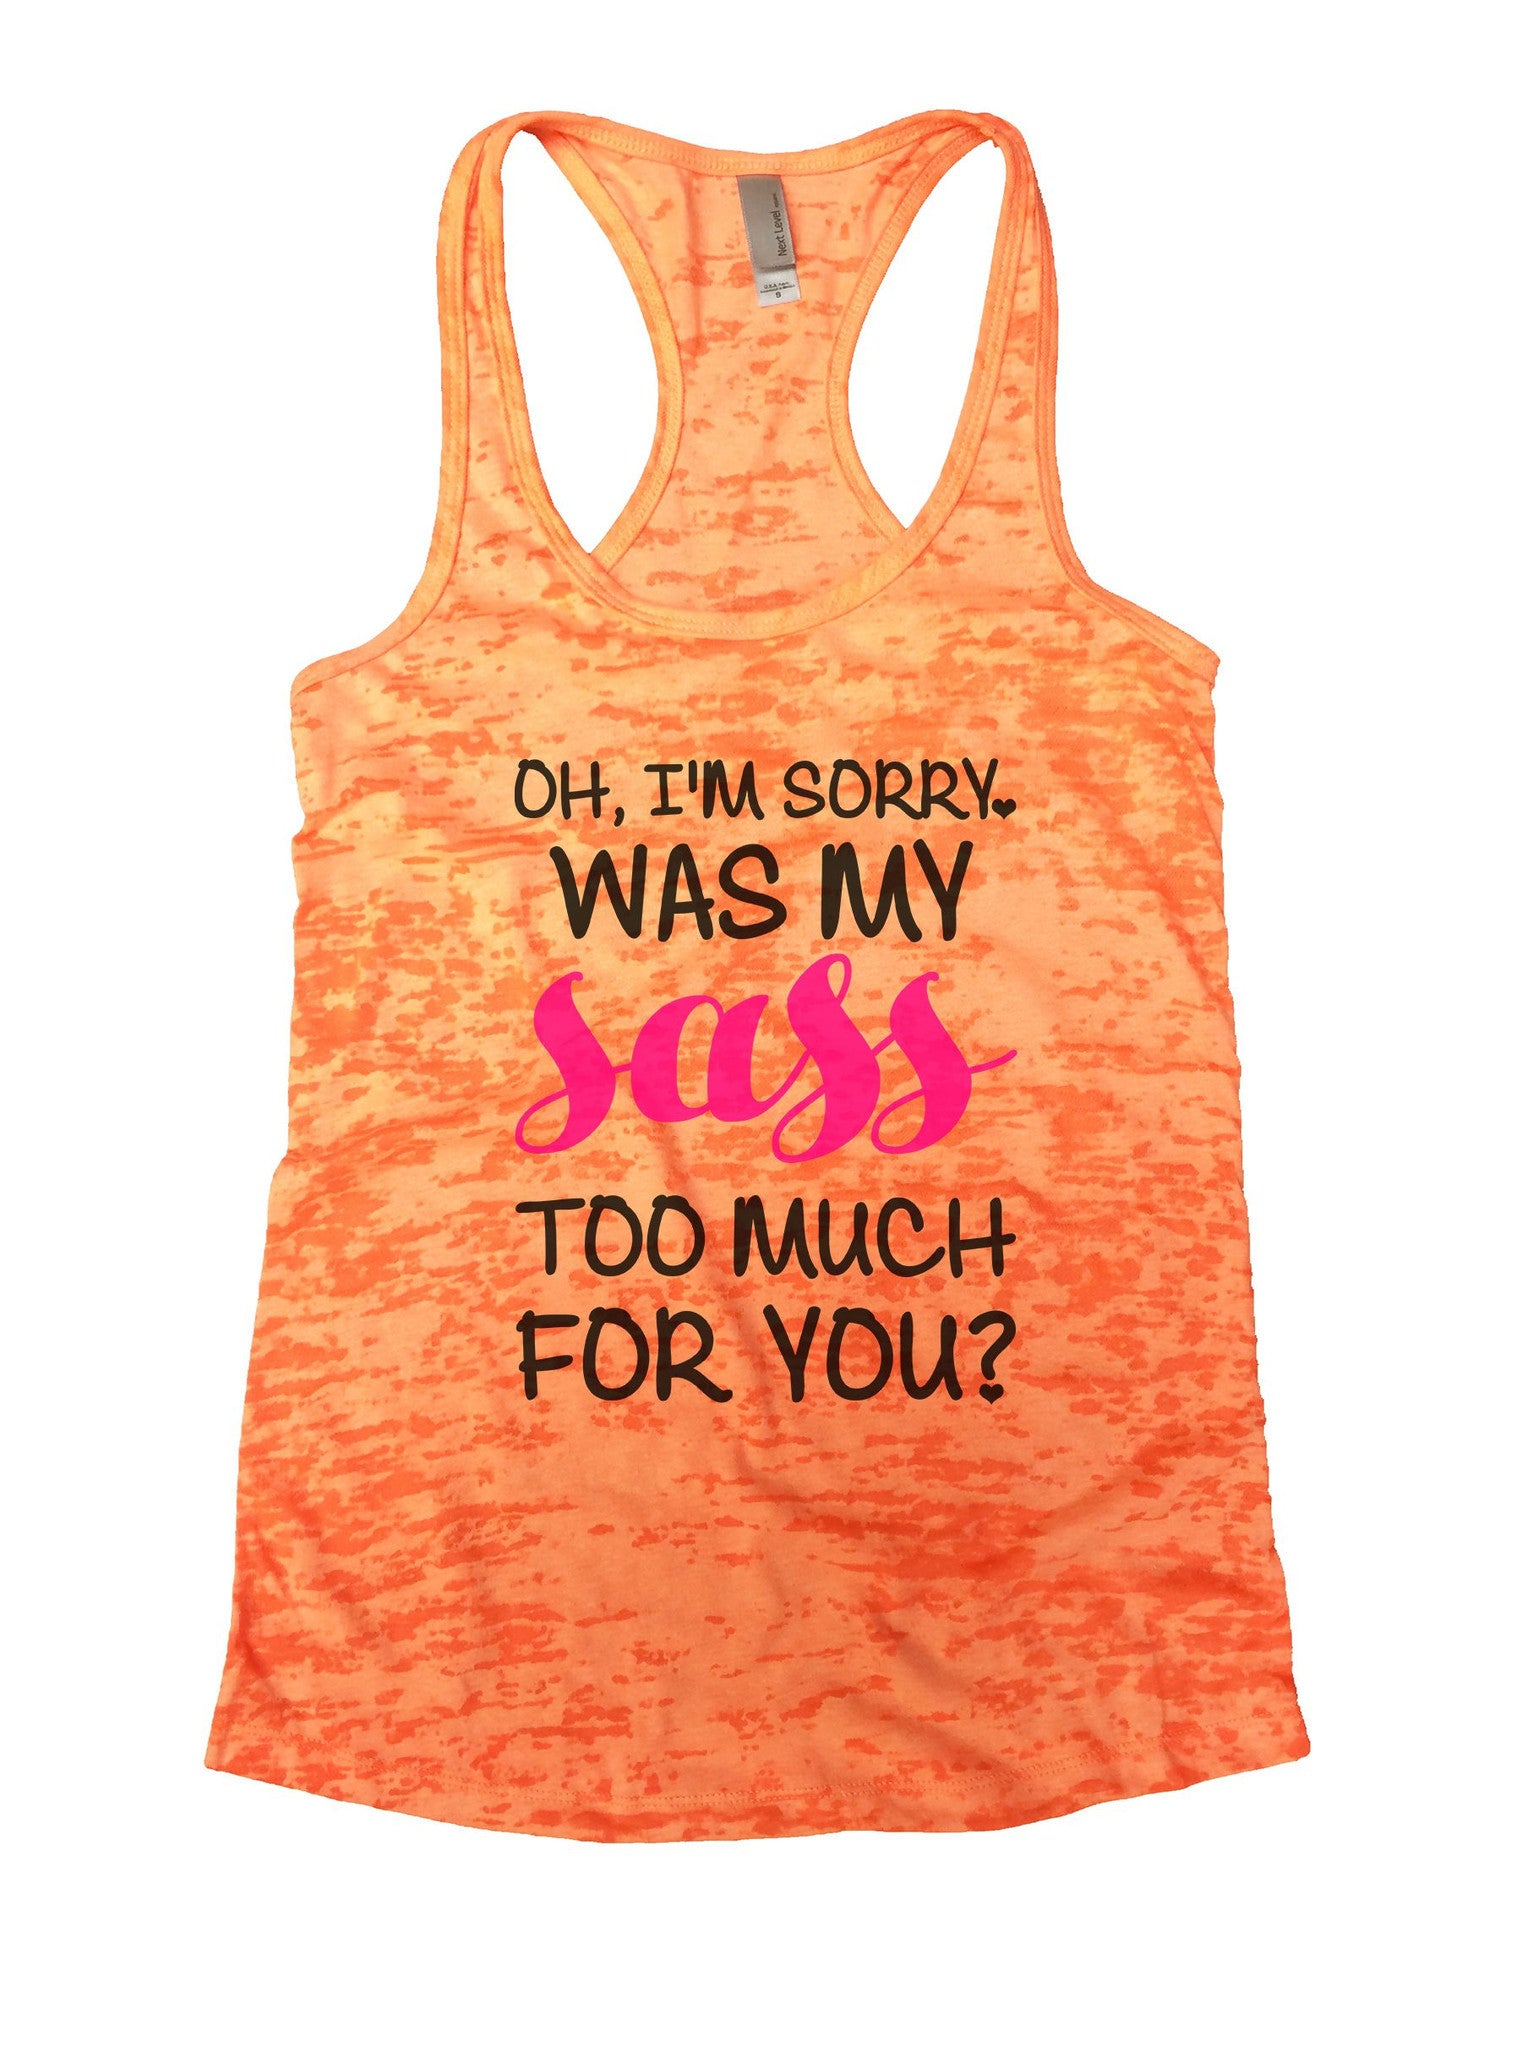 Oh, I'm Sorry, Was My Sass Too Much For You? Burnout Tank Top By BurnoutTankTops.com - 1117 - Funny Shirts Tank Tops Burnouts and Triblends  - 2